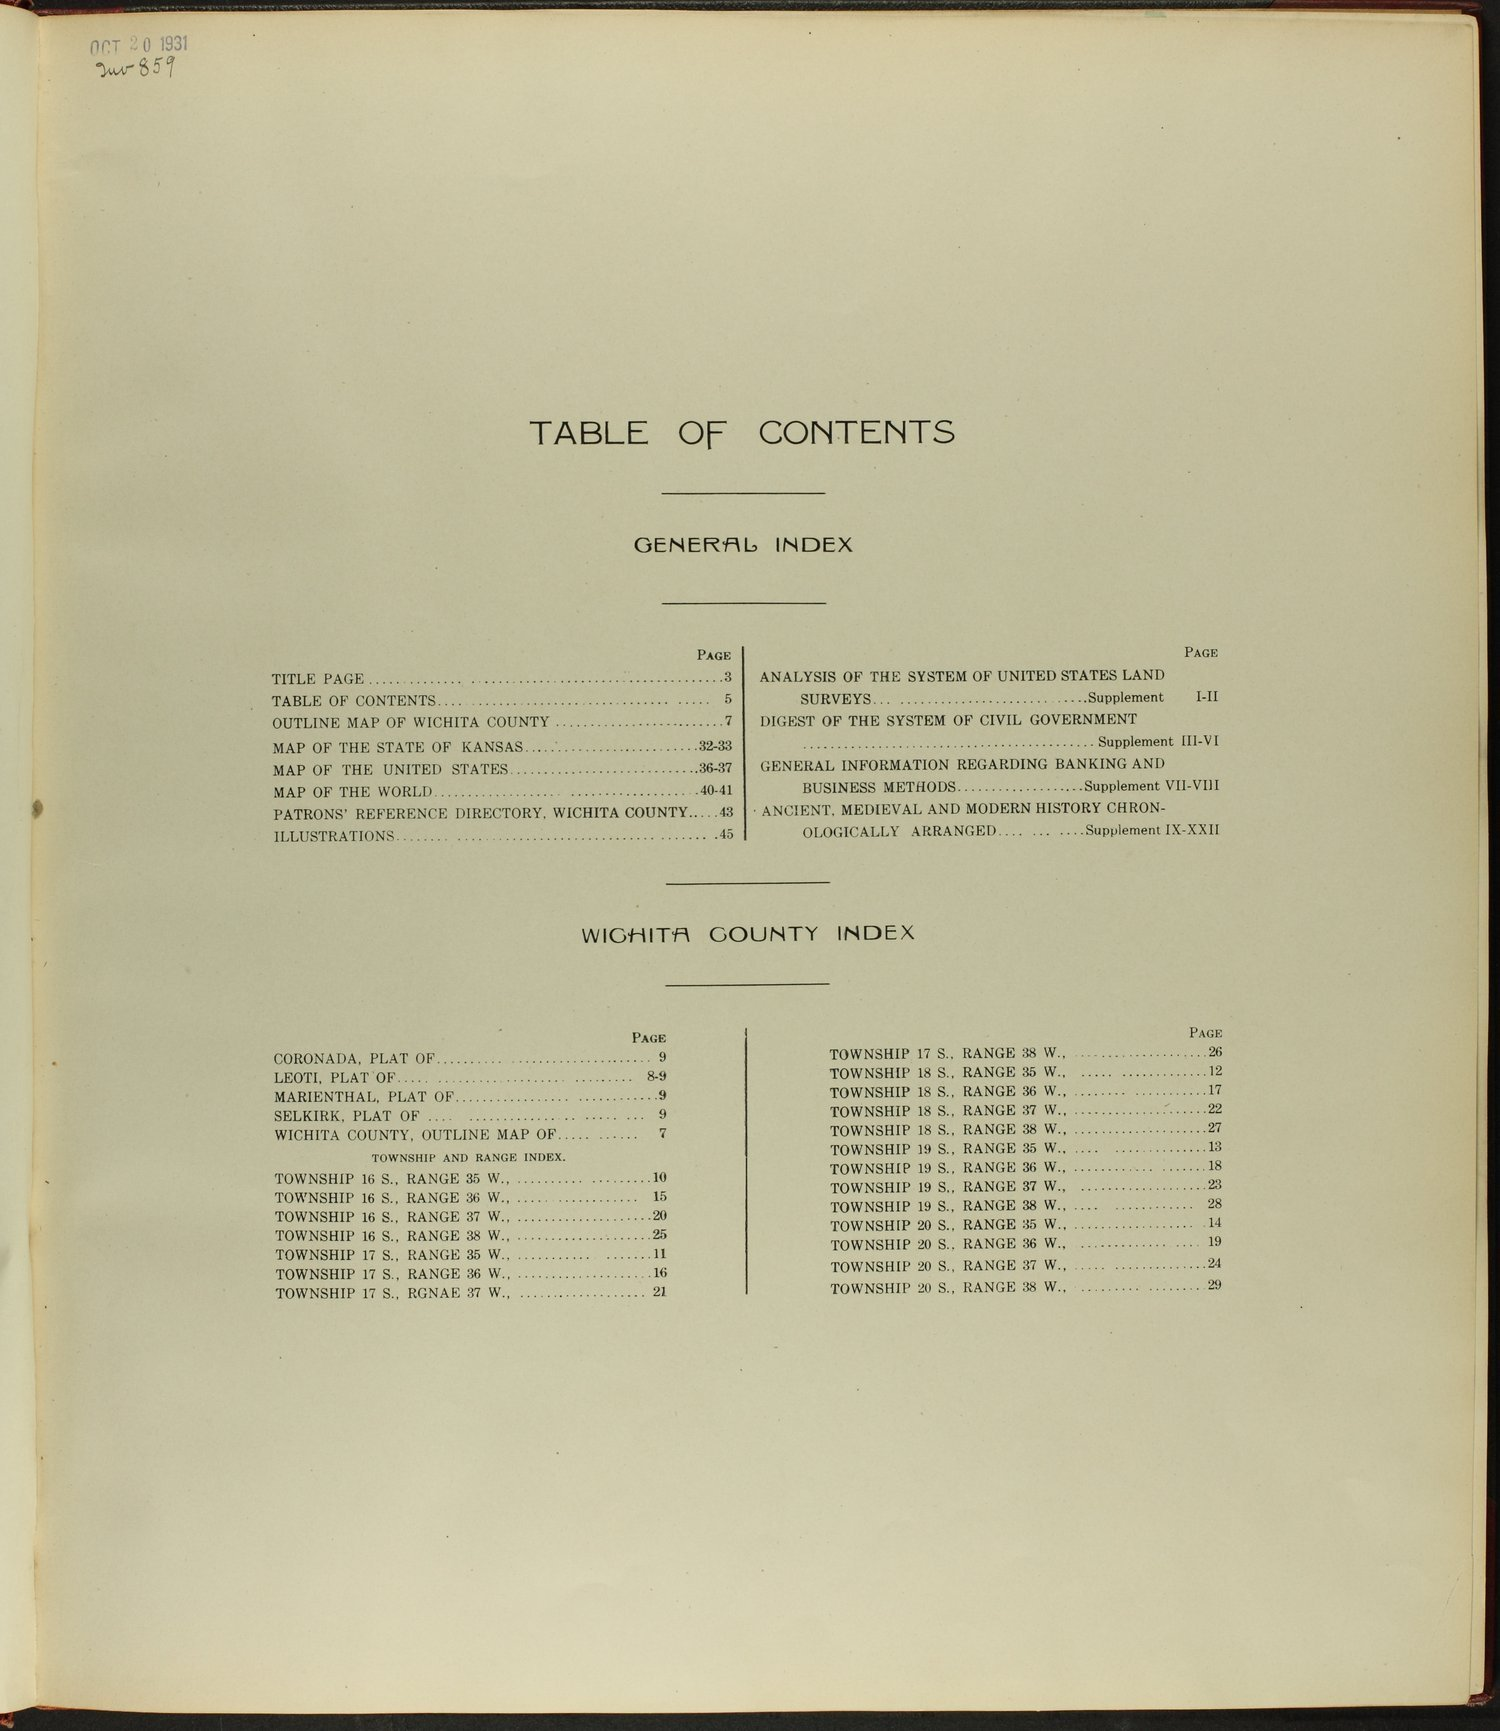 Standard atlas of Wichita County, Kansas - Table of Contents